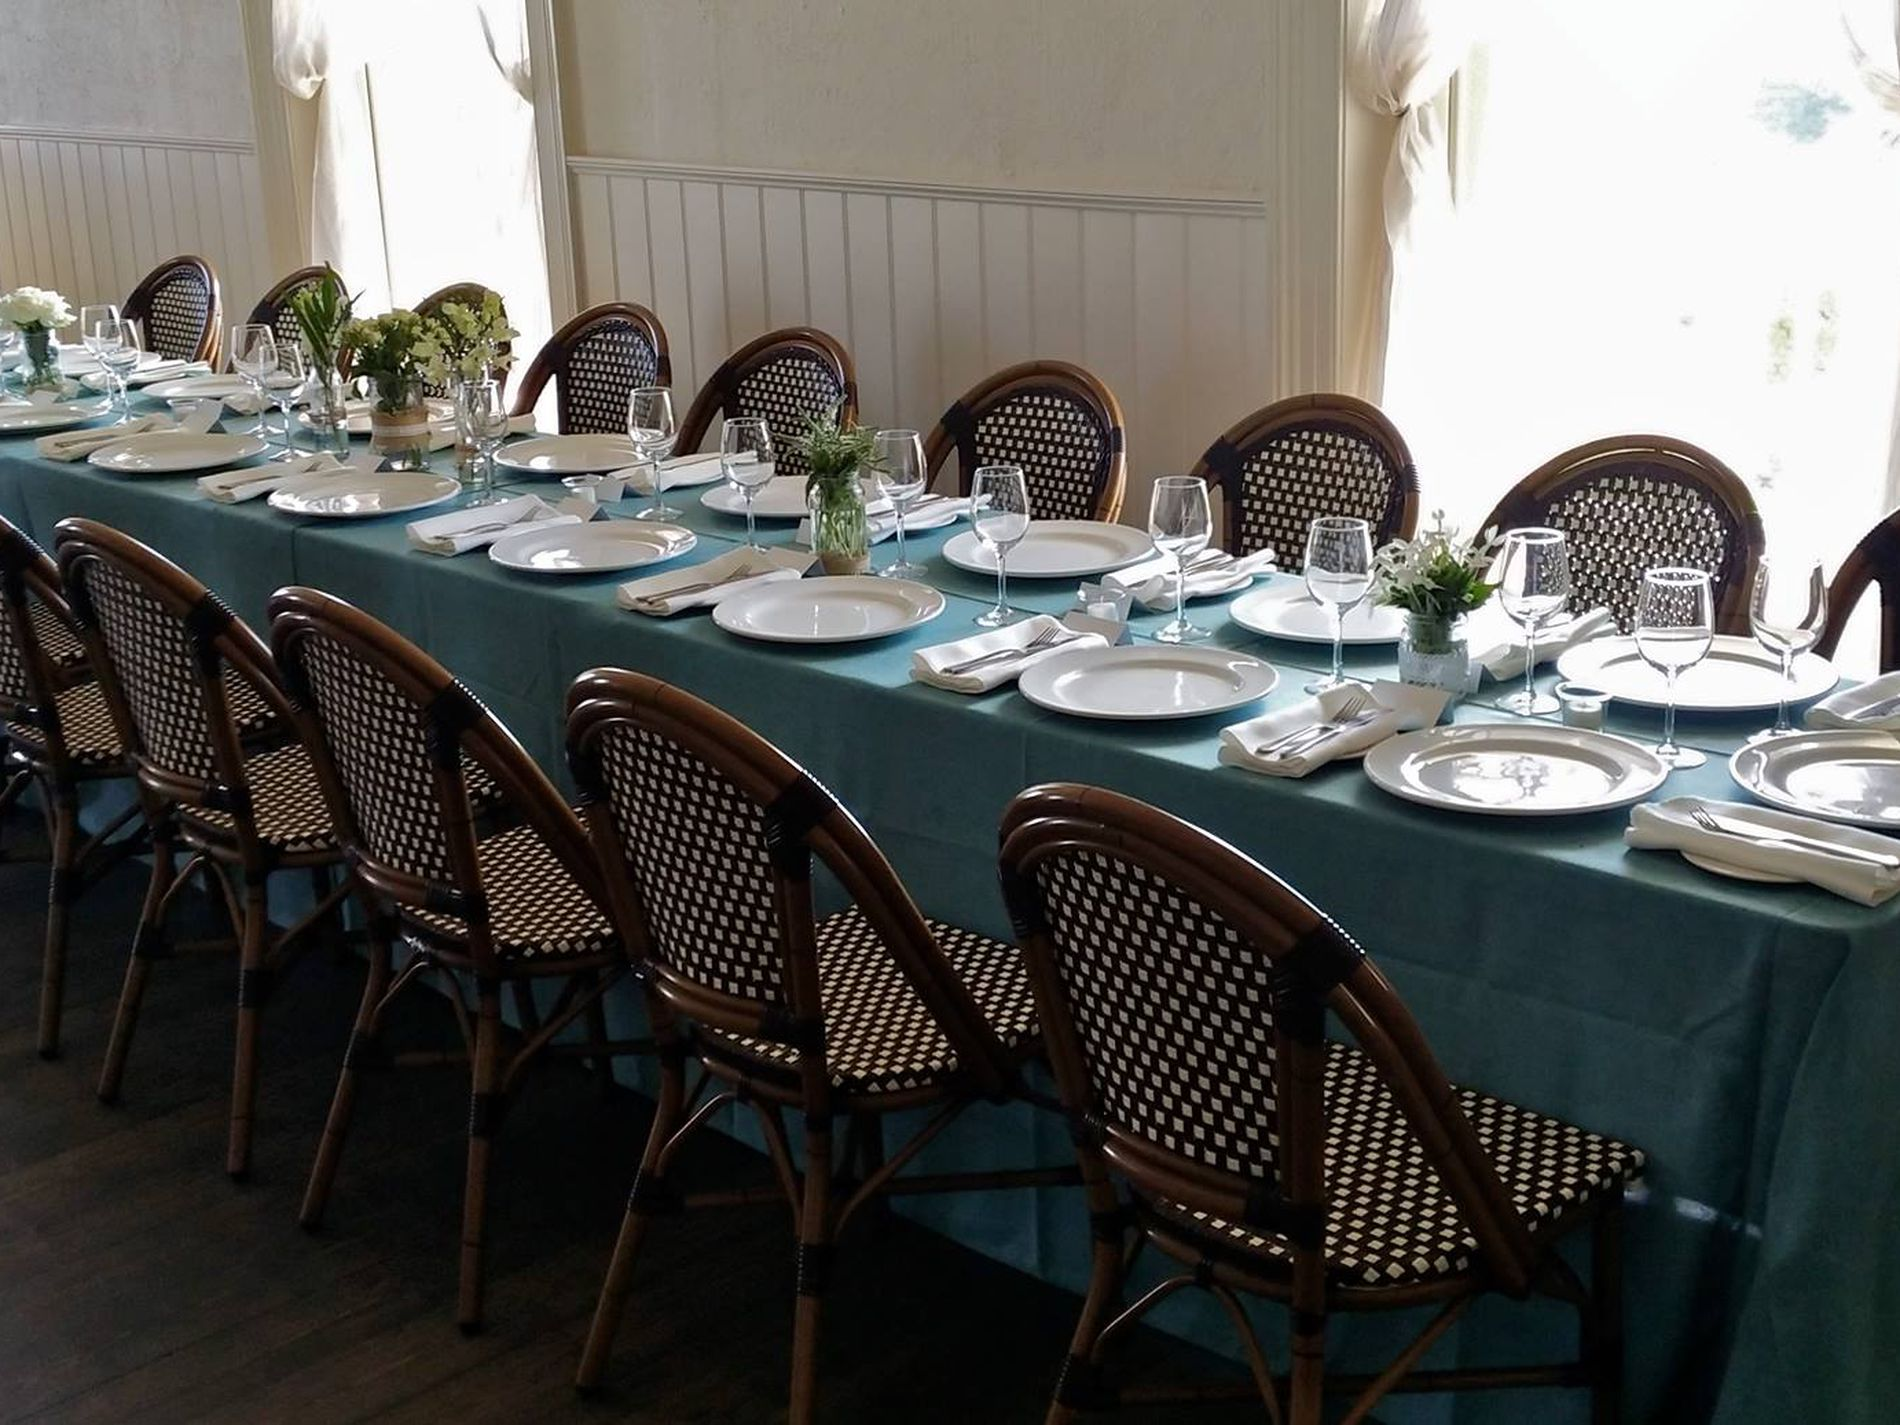 Linen Hire and Retail Business For Sale